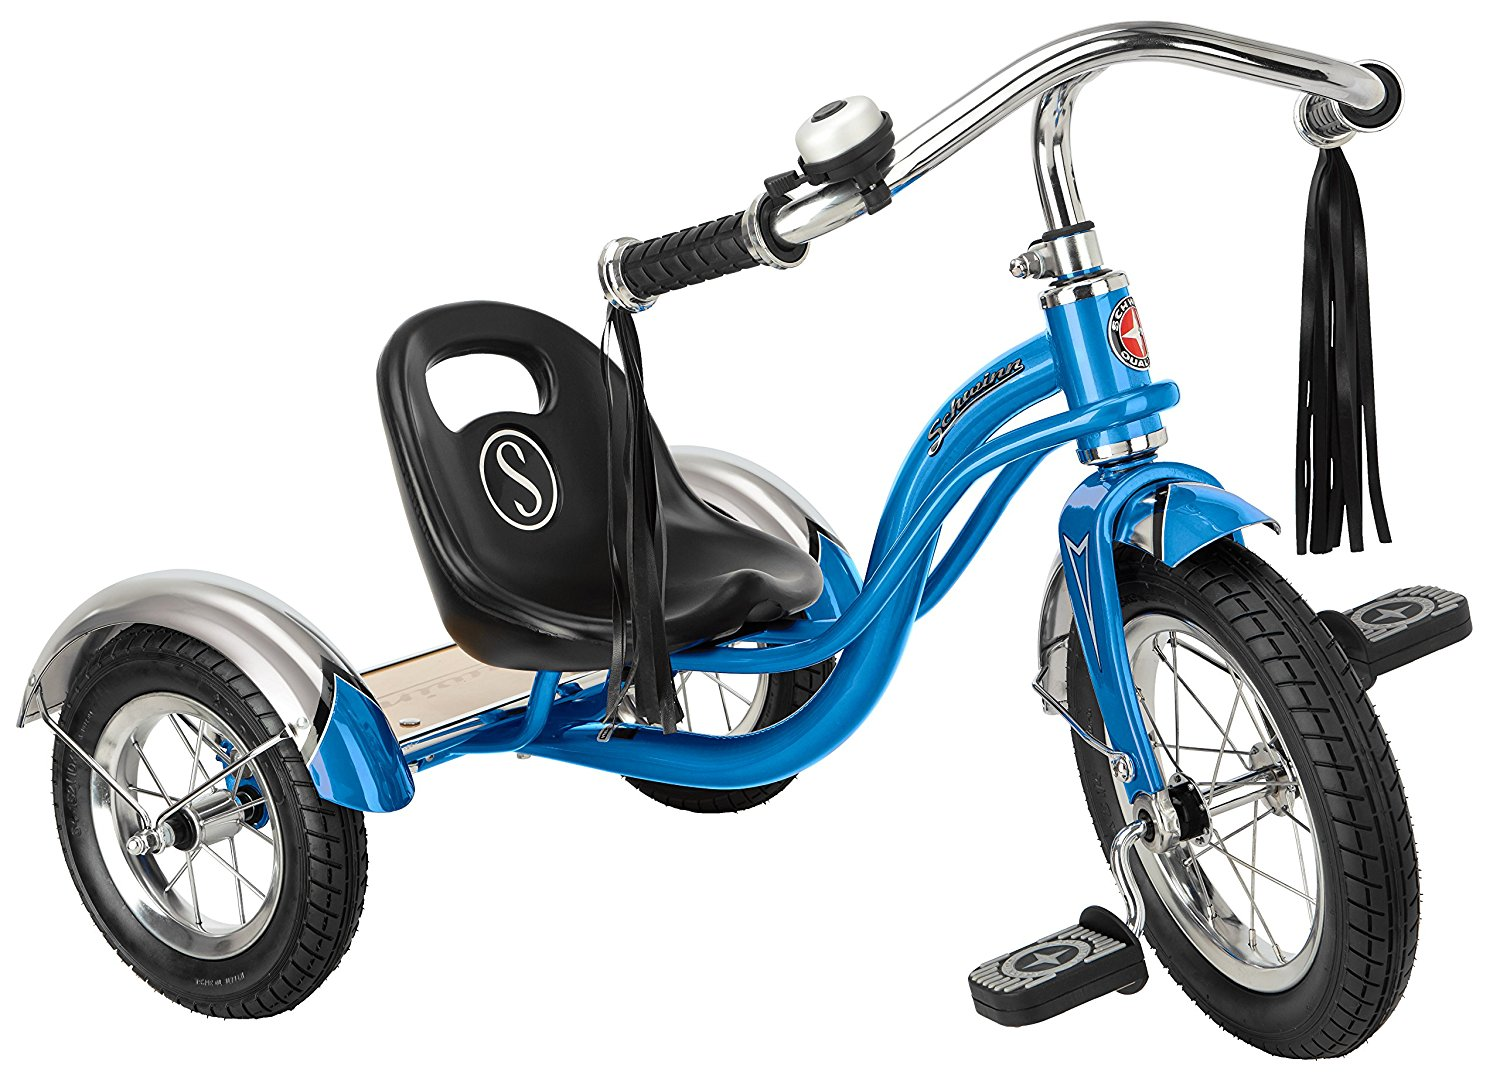 Schwinn Roadster 12-Inch Trike With Adjustable (5-Position) Sculpted Seat And Low Center Of Gravity To Prevent Tip-Overs – Four Color Options